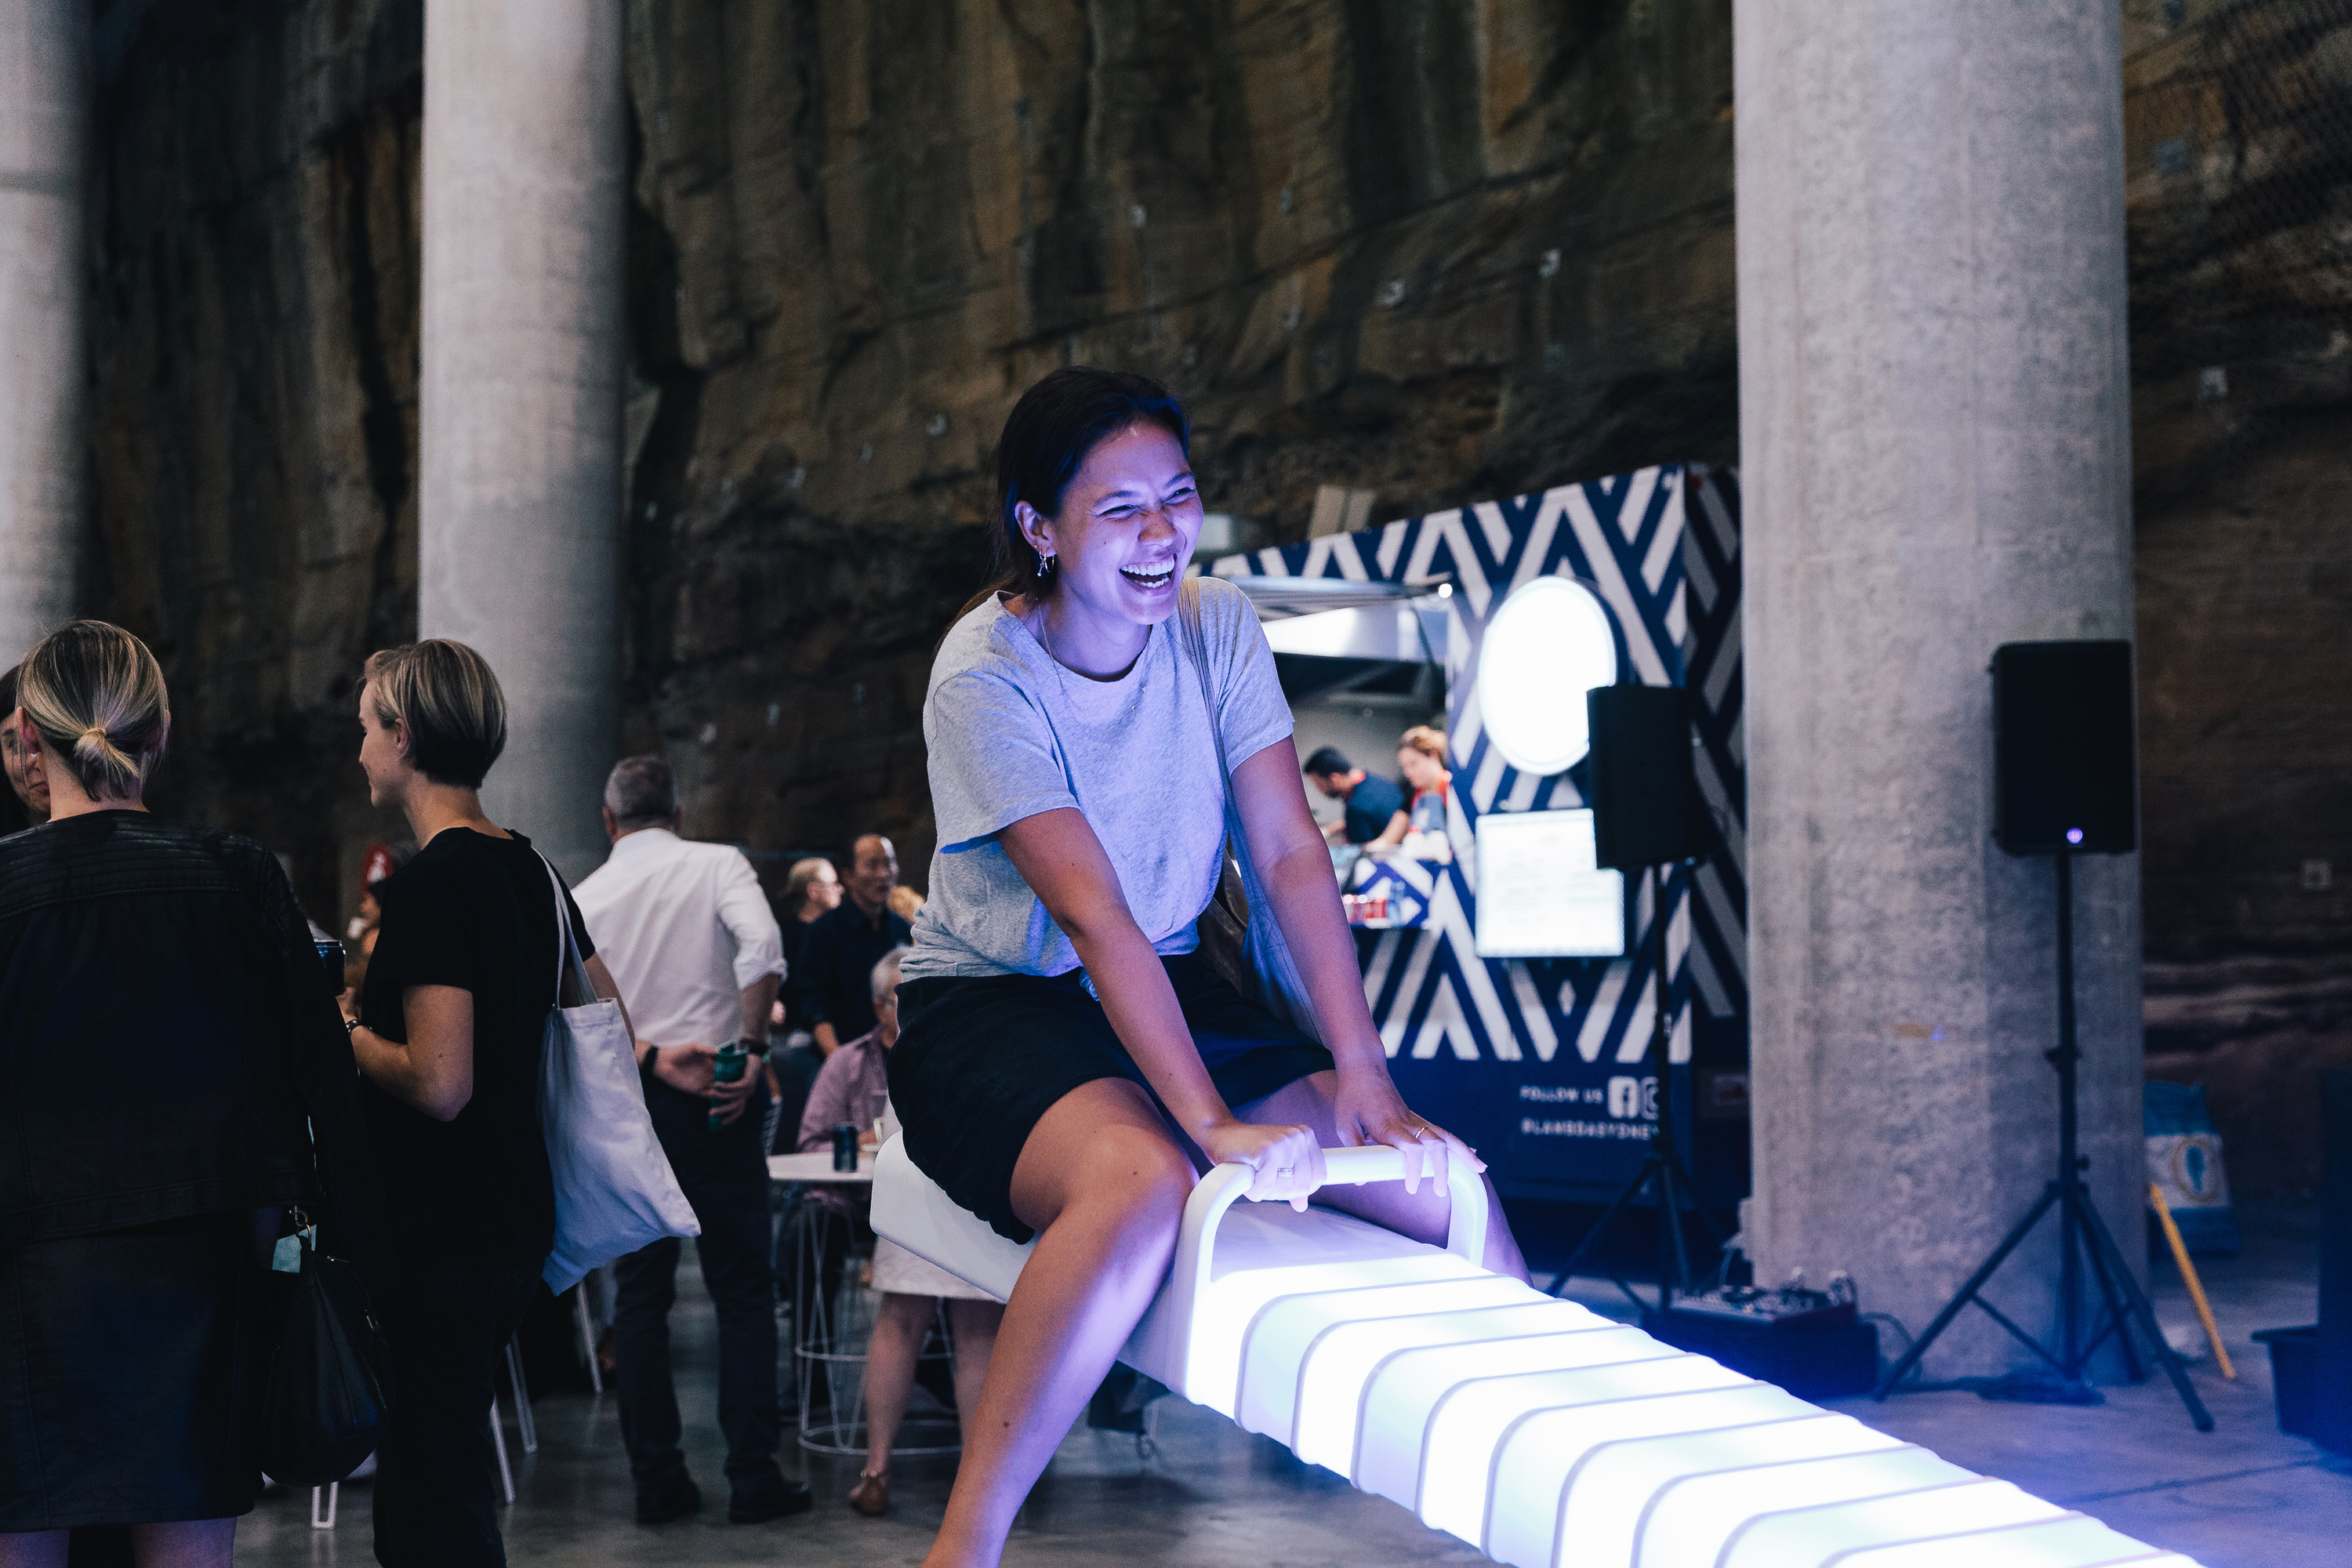 A person smiles atop a glowing see-saw at the Cutaway in Barangaroo.